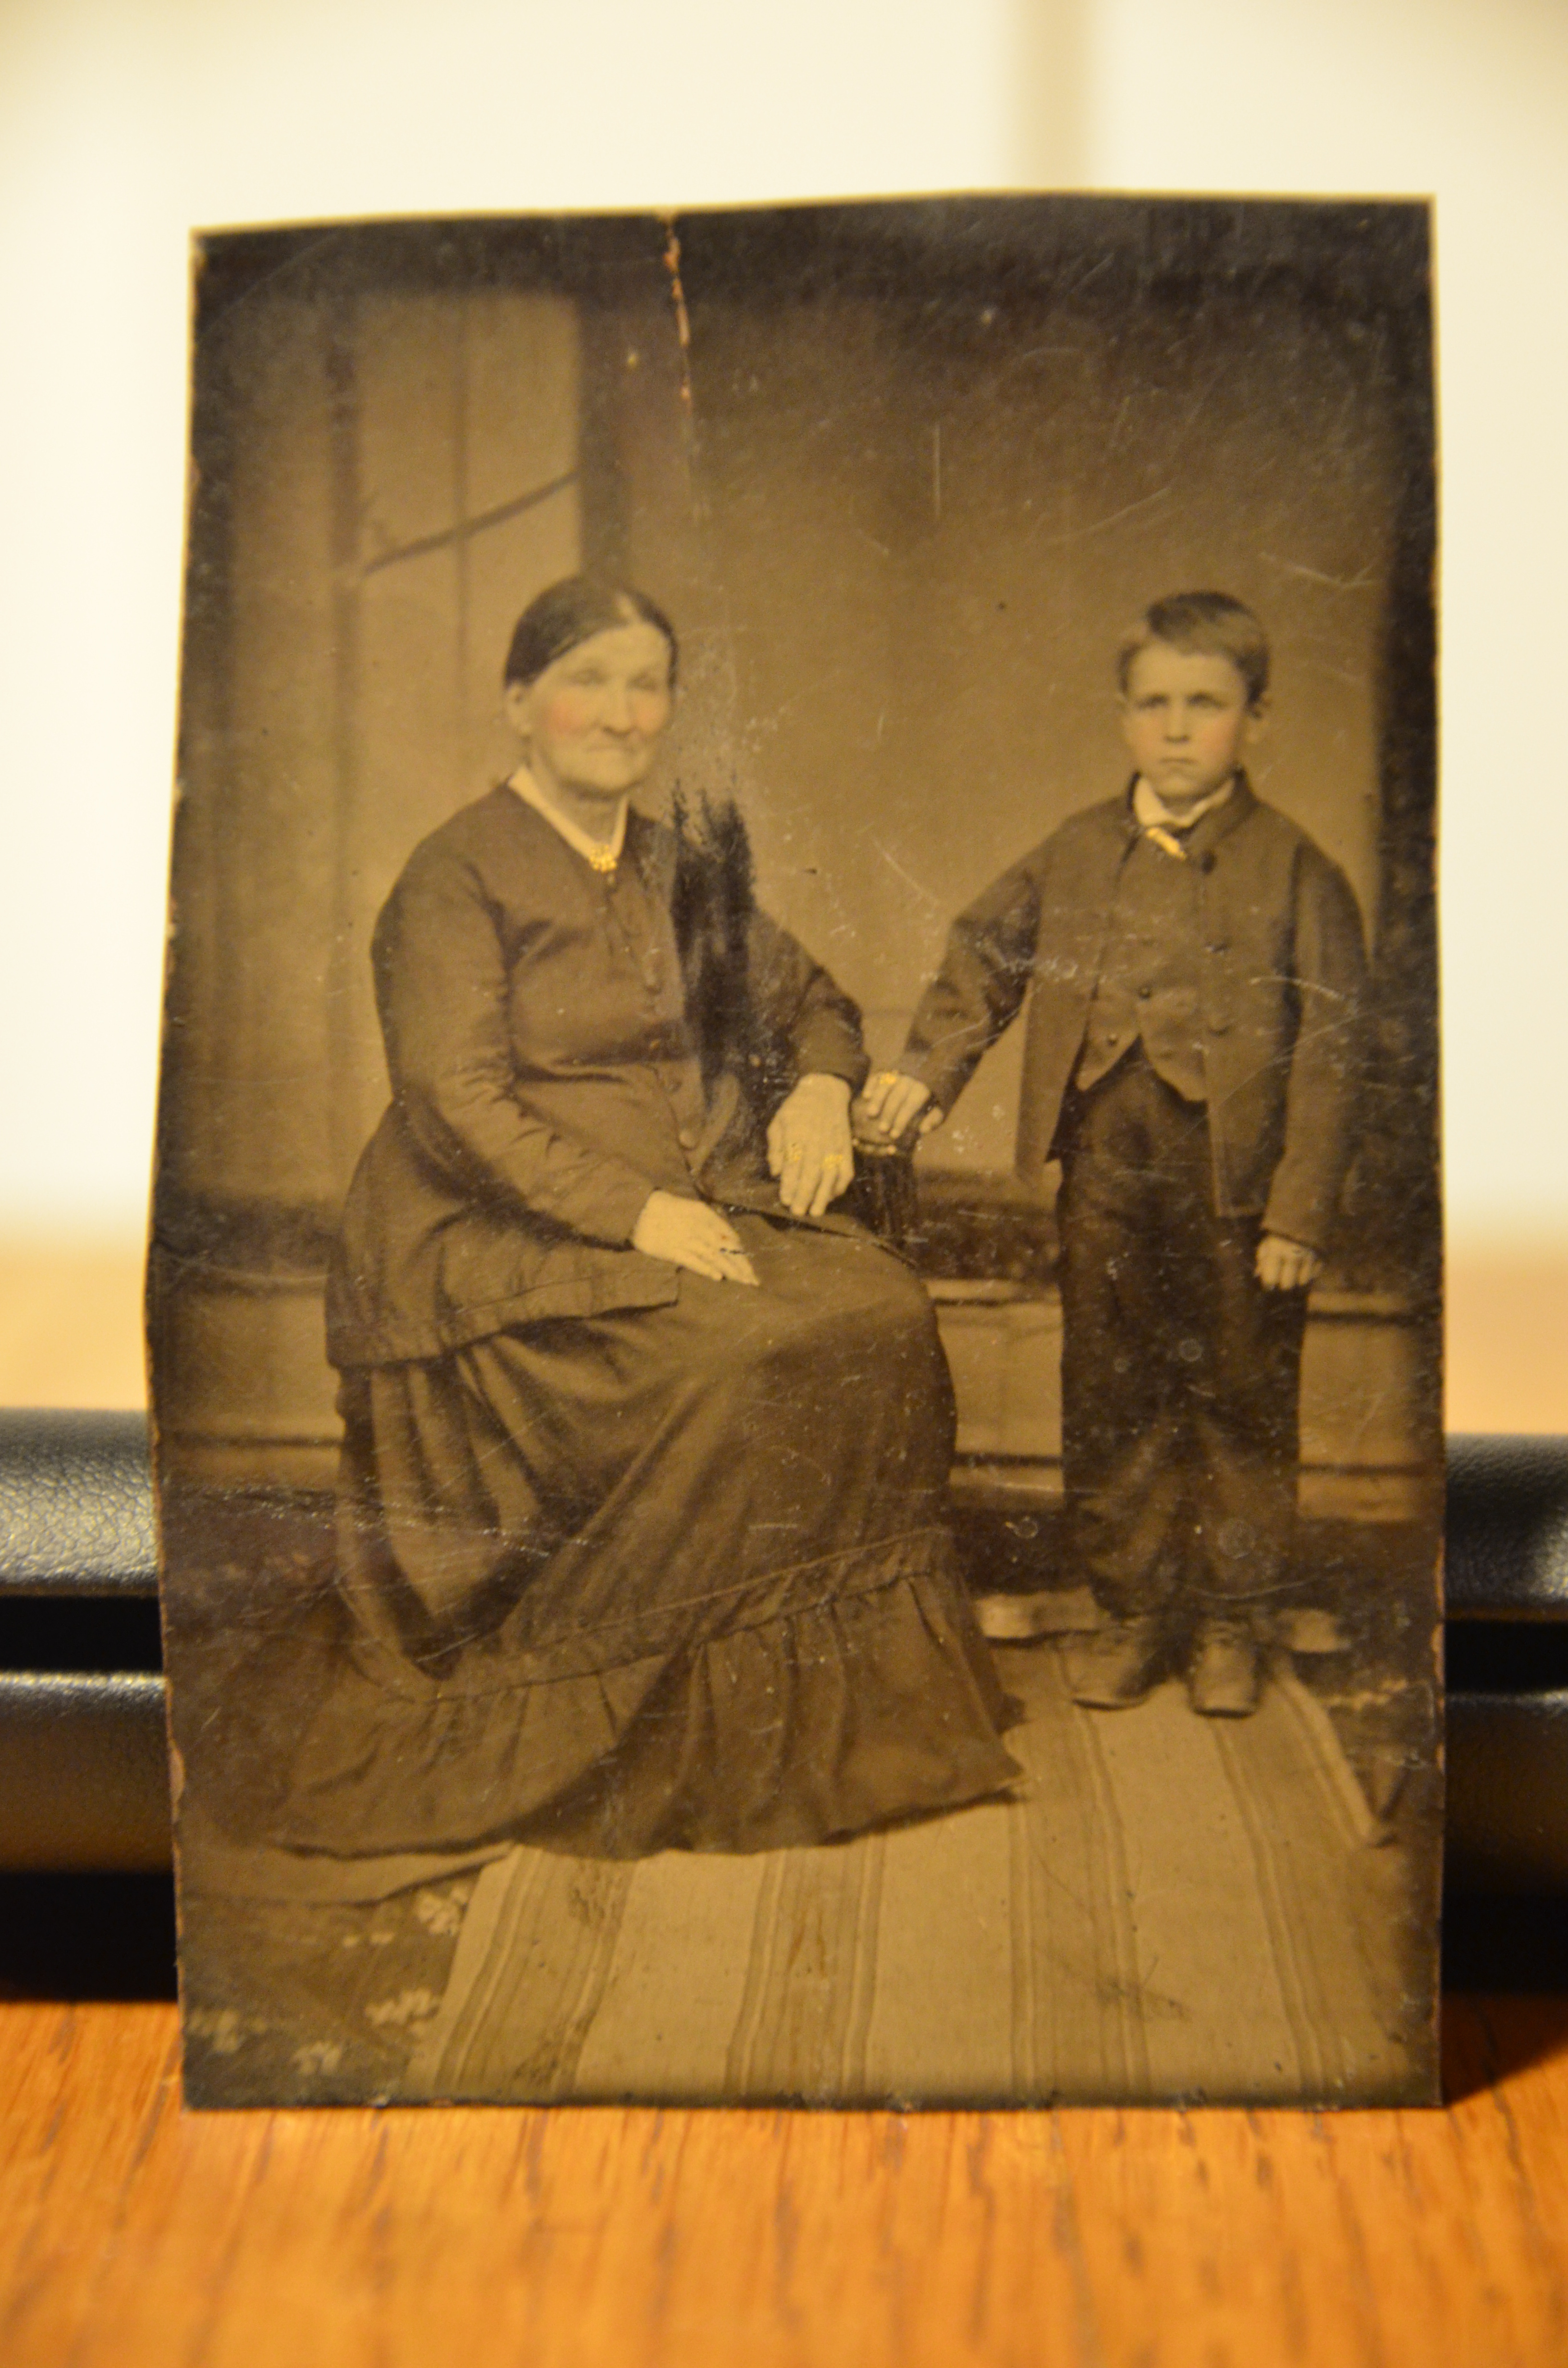 It's So Wicked – Post Mortem Photography | little wicked ...